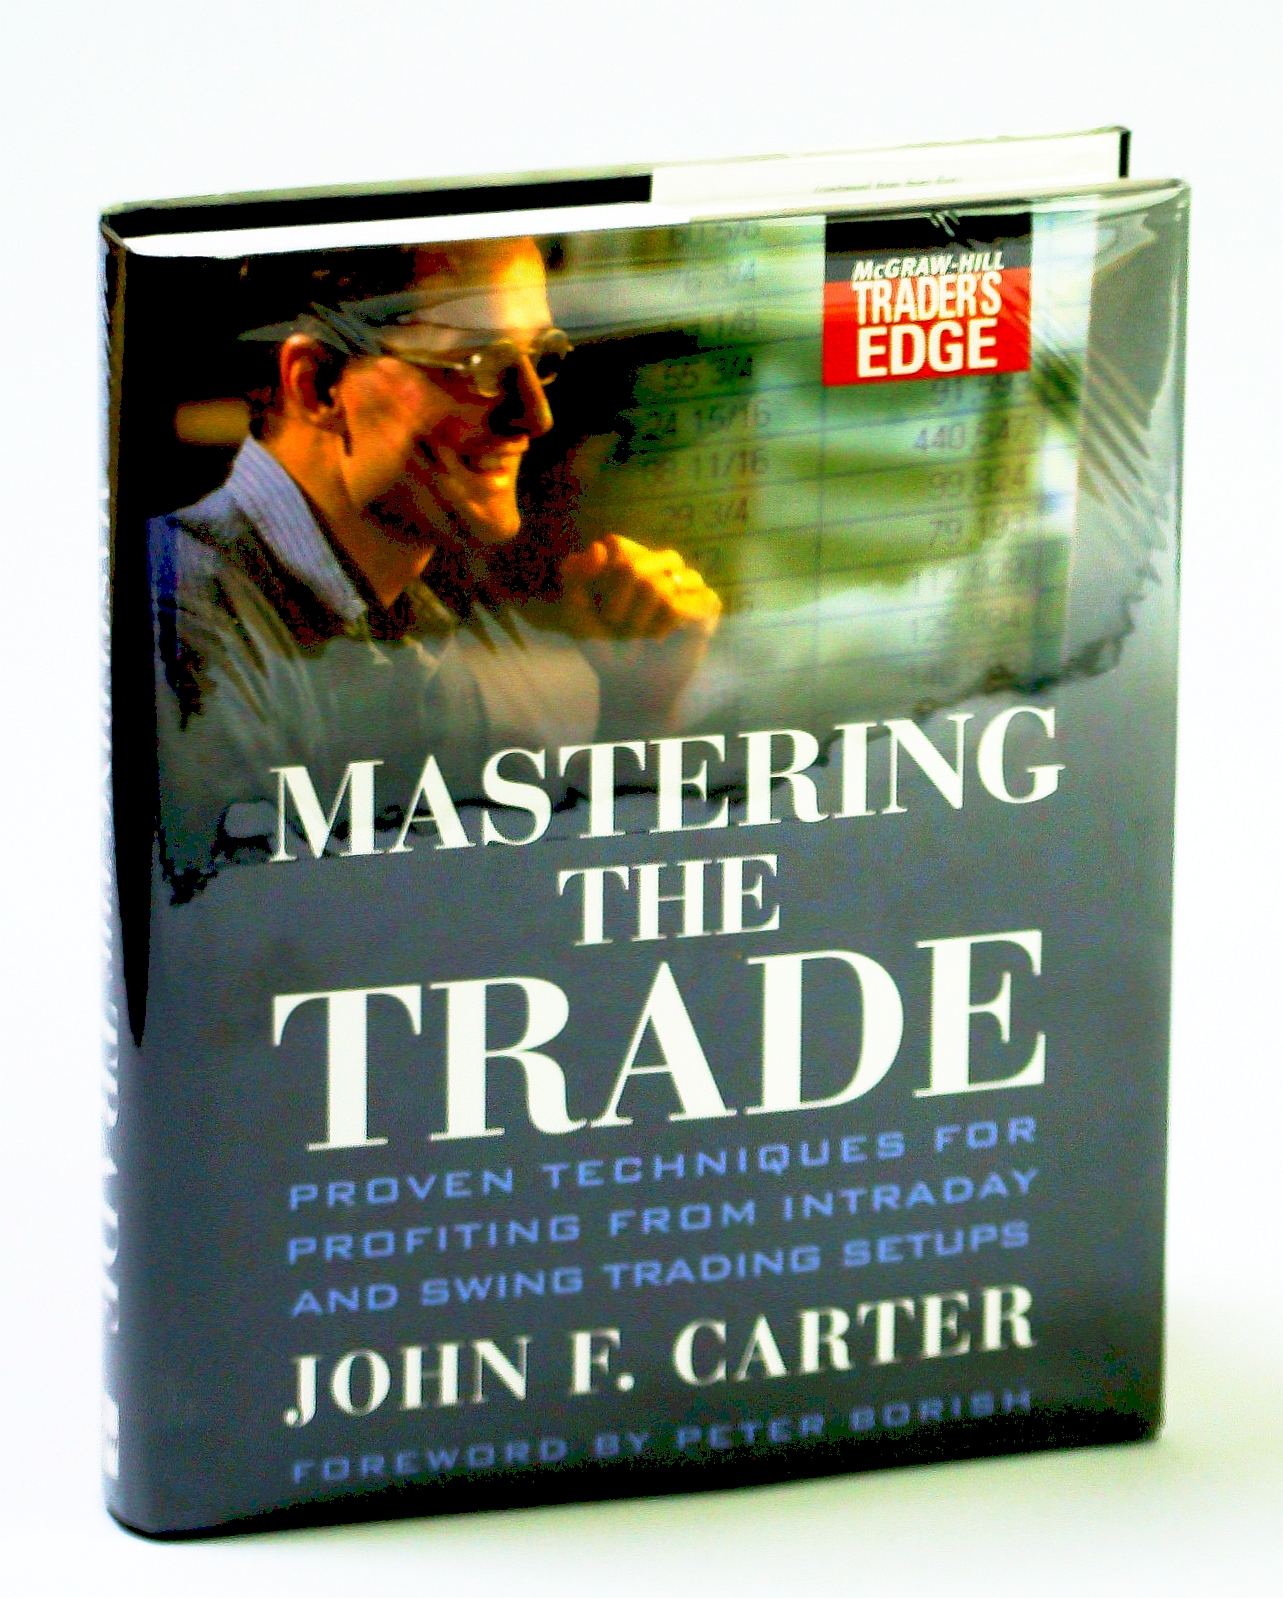 Image for Mastering the Trade: Proven Techniques for Profiting from Intraday and Swing Trading Setups (McGraw-Hill Trader?s Edge Series)